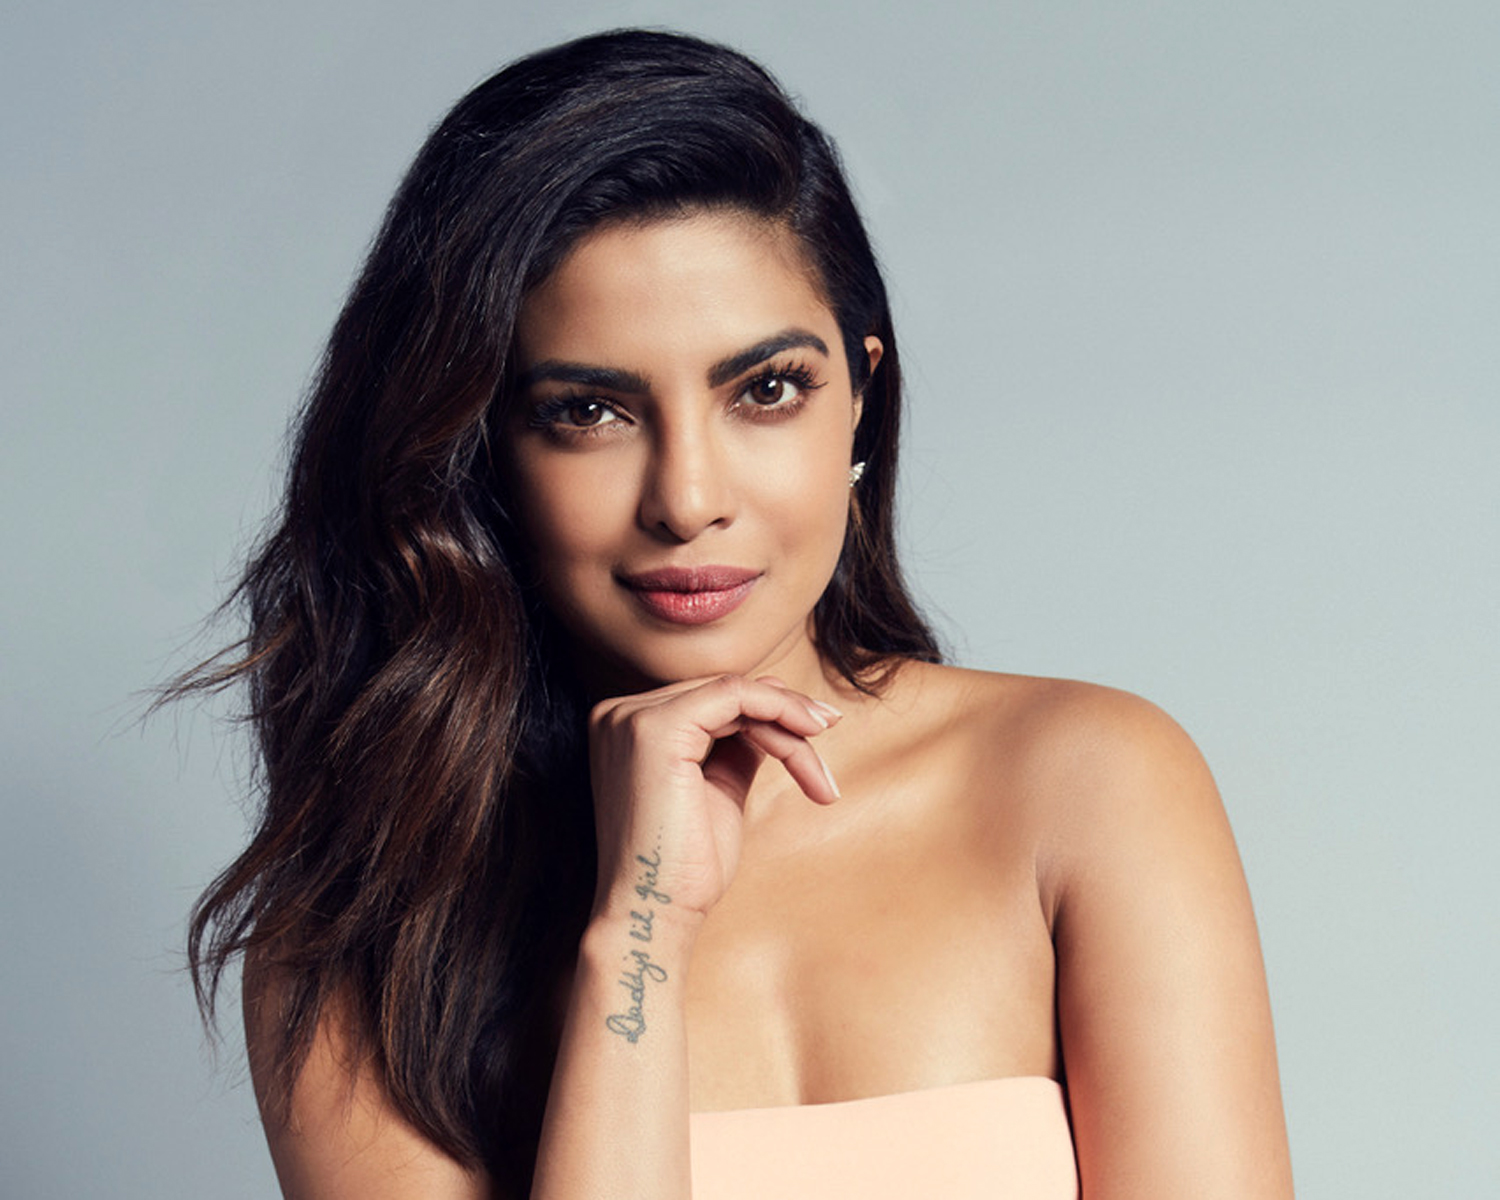 Priyanka Chopra, Priyanka Chopra, Age,Height, Figure, Movies, Husband, Instagram & More